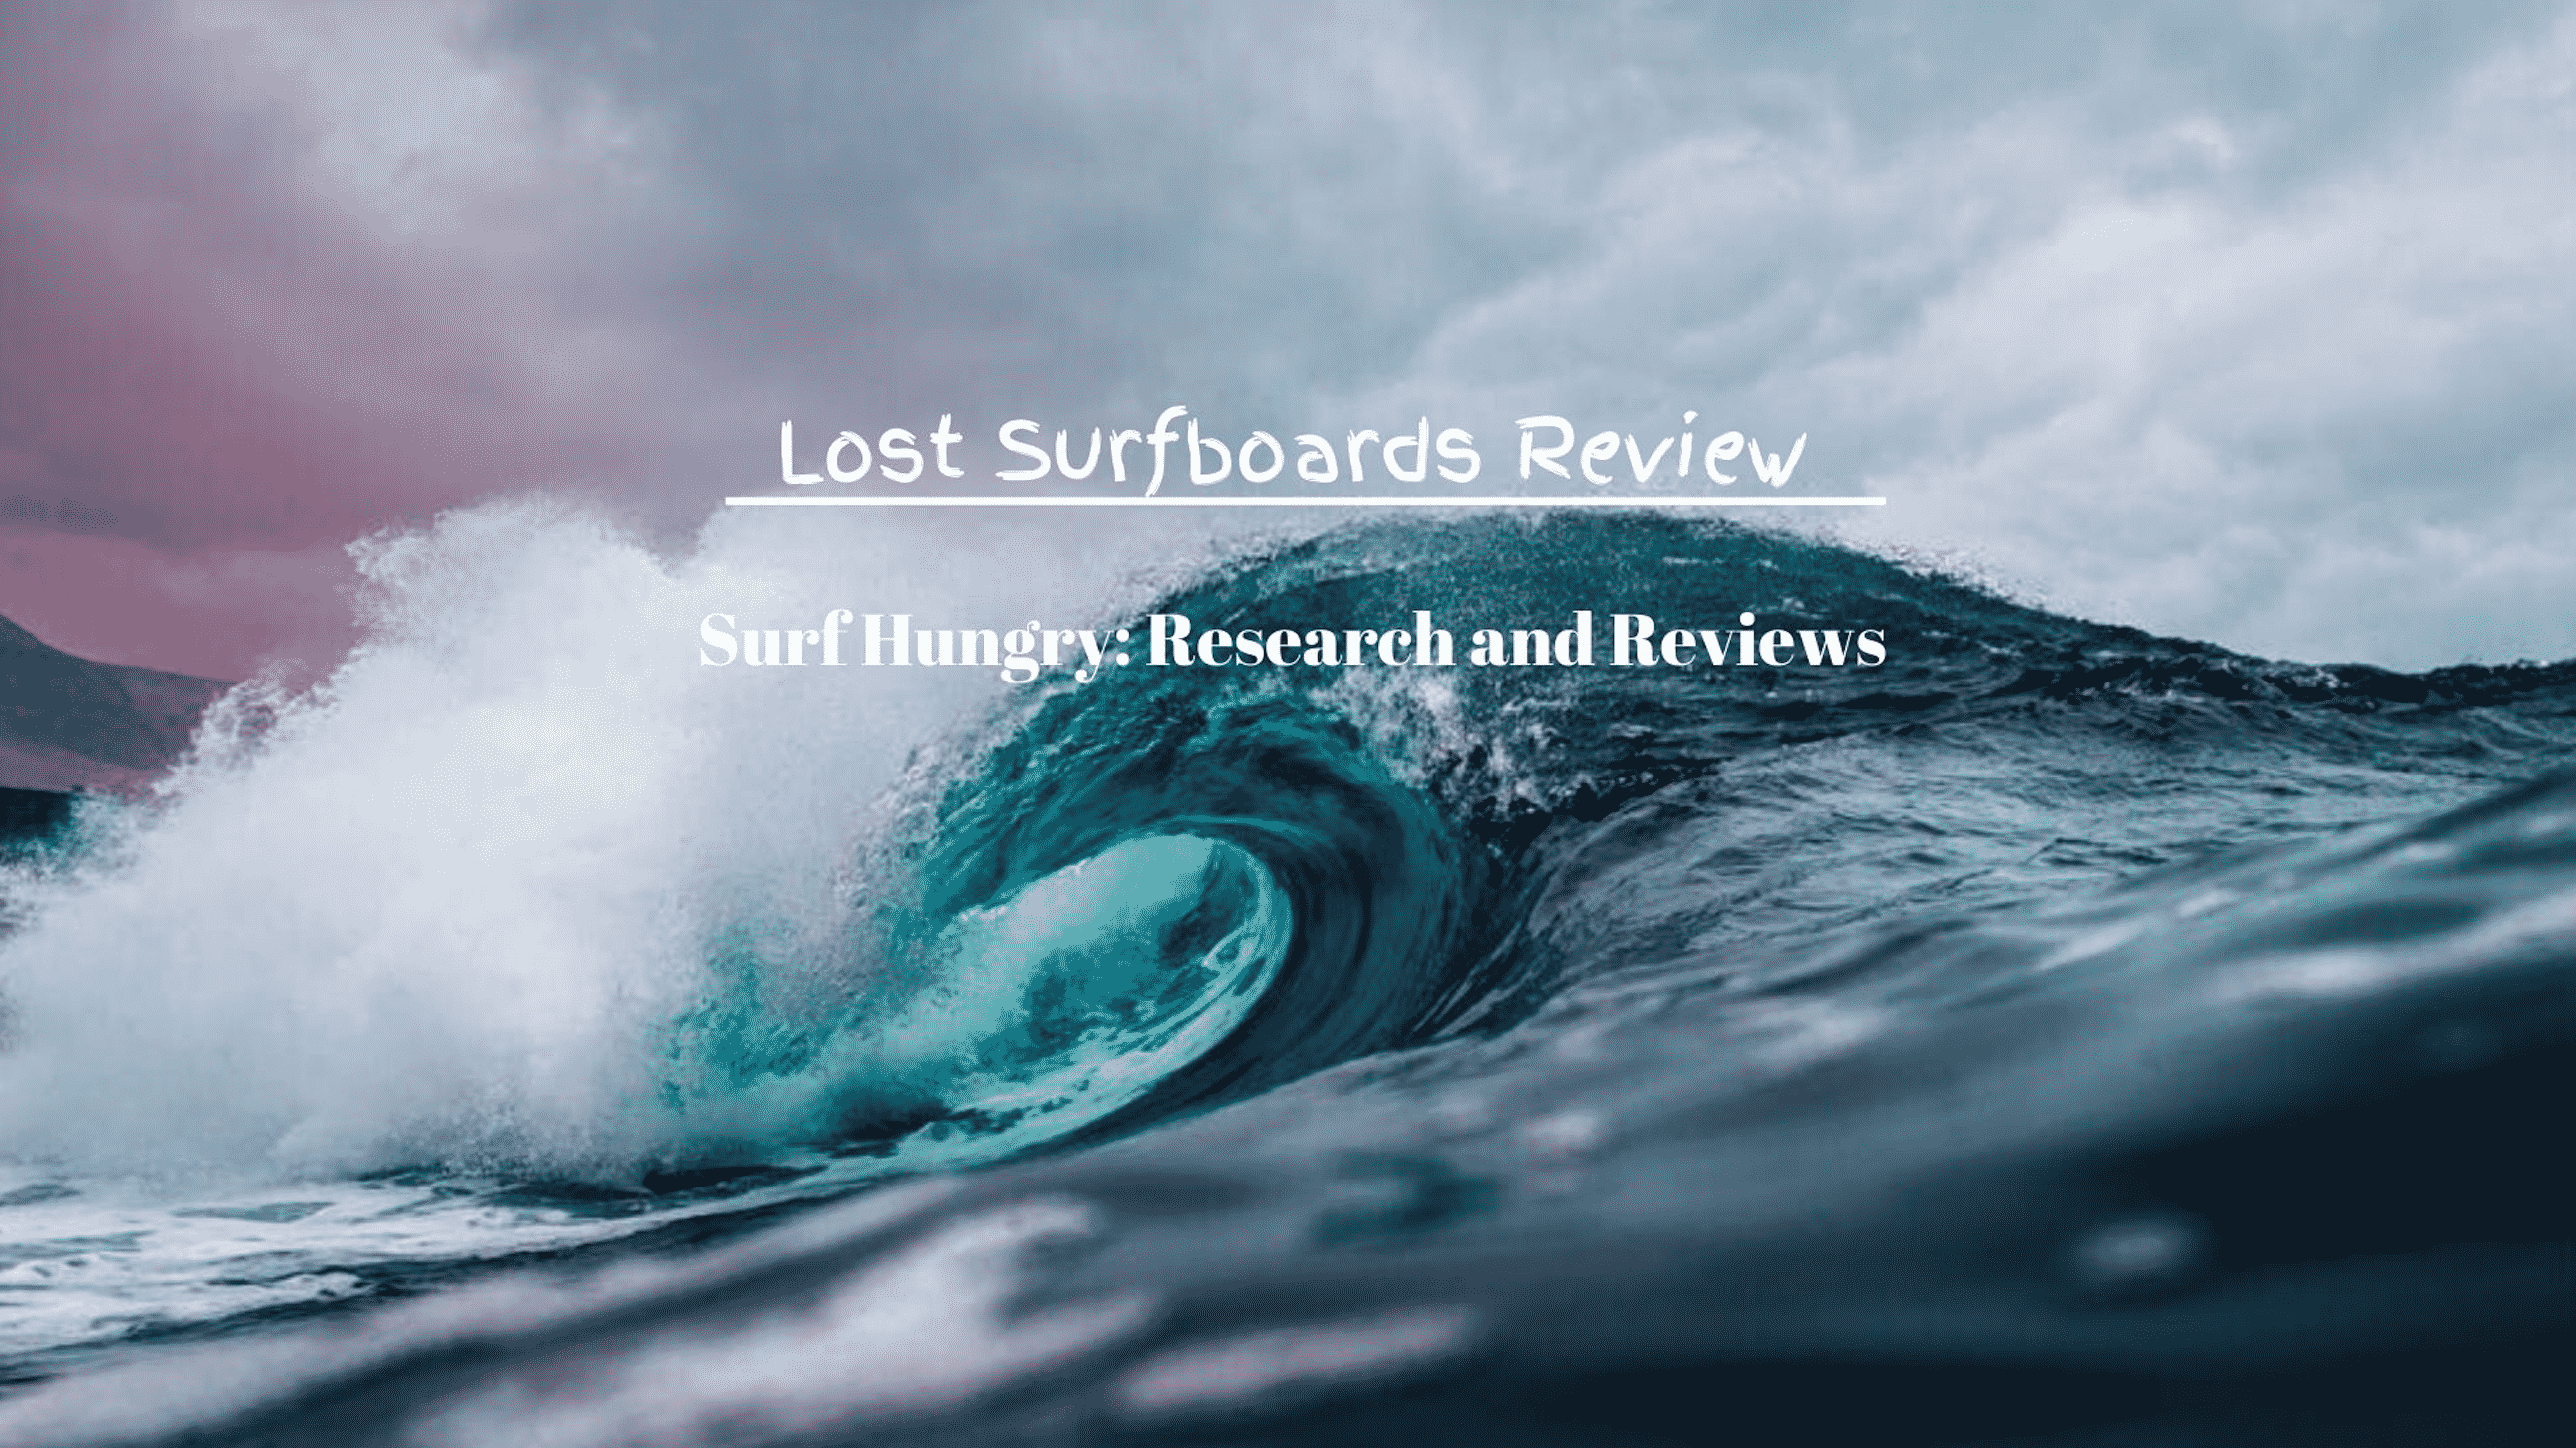 lost surfboards review